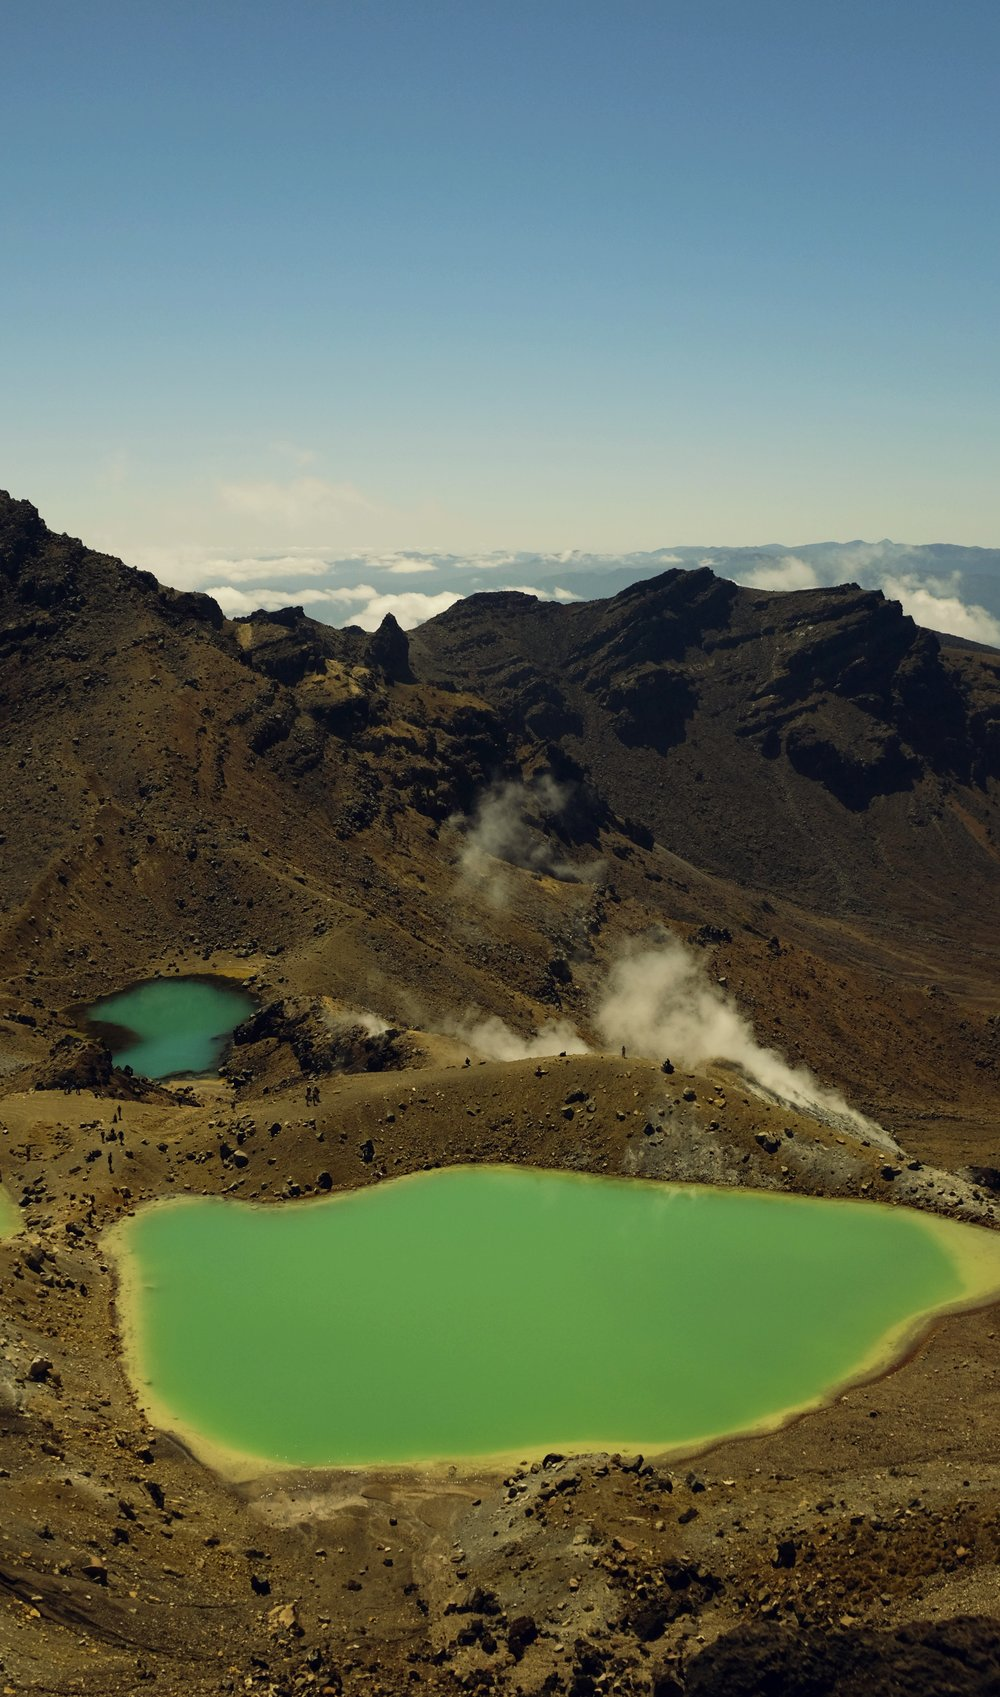 The Emerald Lakes on the slopes of Tongariro. Hard to catch a pic without too many people! The water is actually that color...